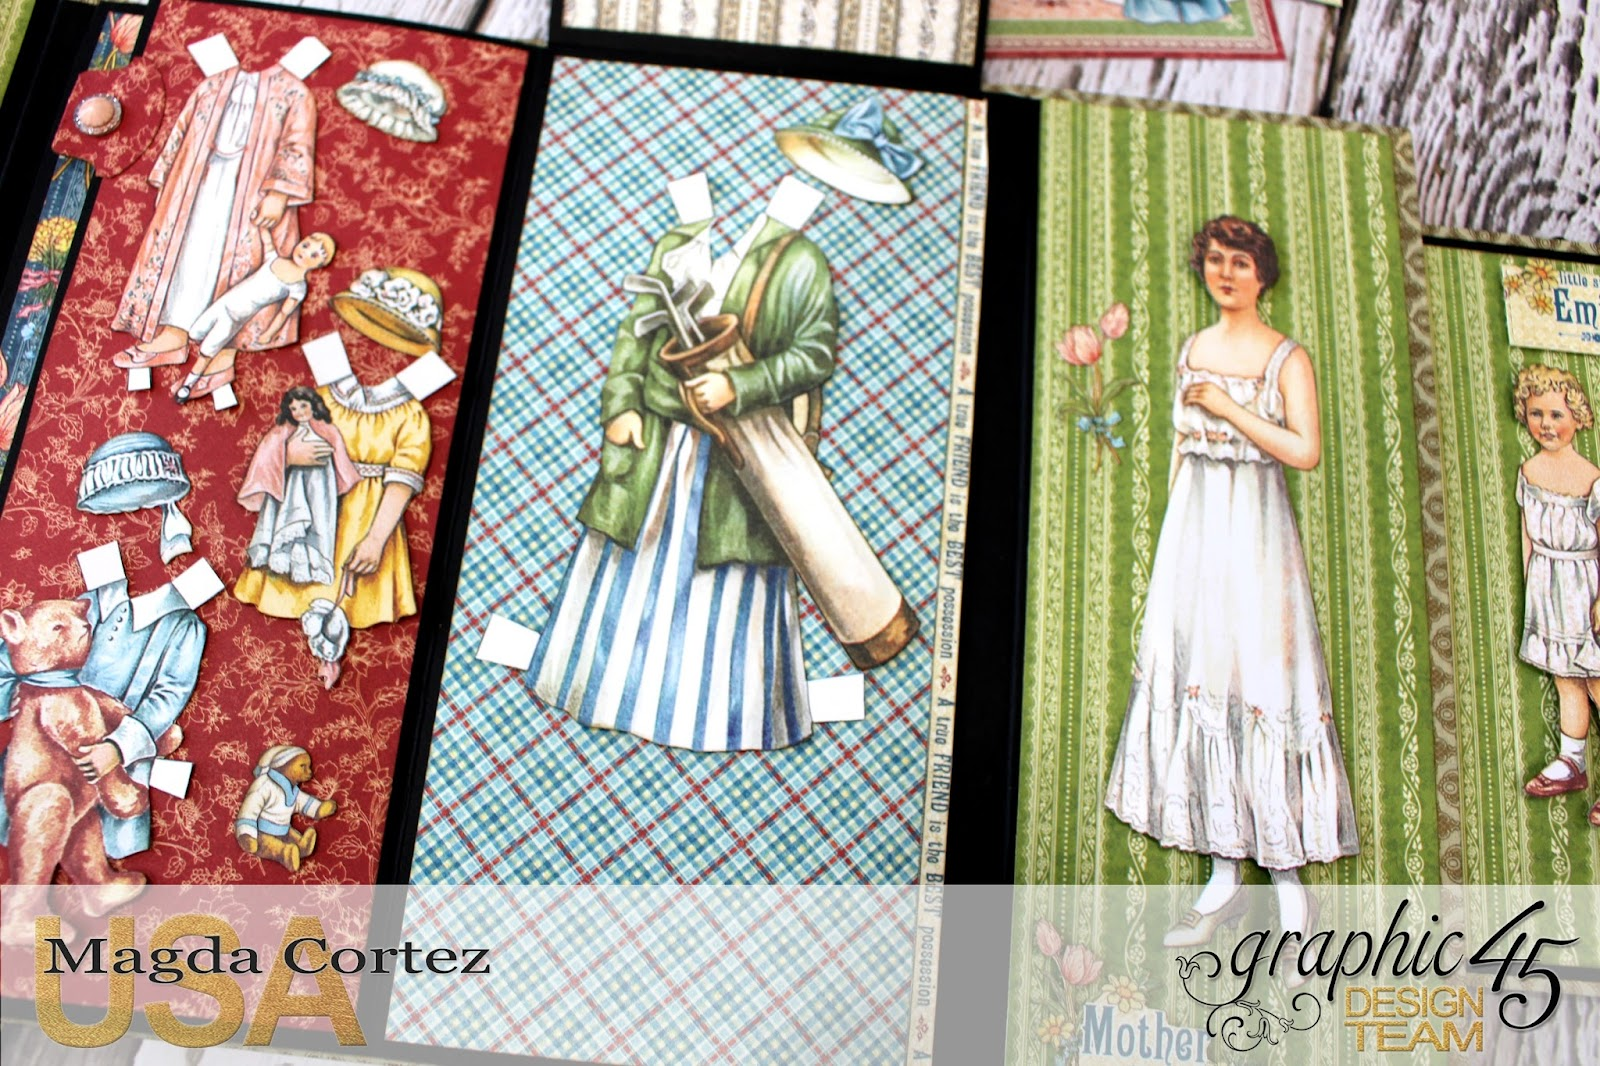 Penny's Paper Doll Family Book, Penny's Paper Doll Family, By Magda Cortez, Product of Graphic45, Photo 05 of 12.jpg